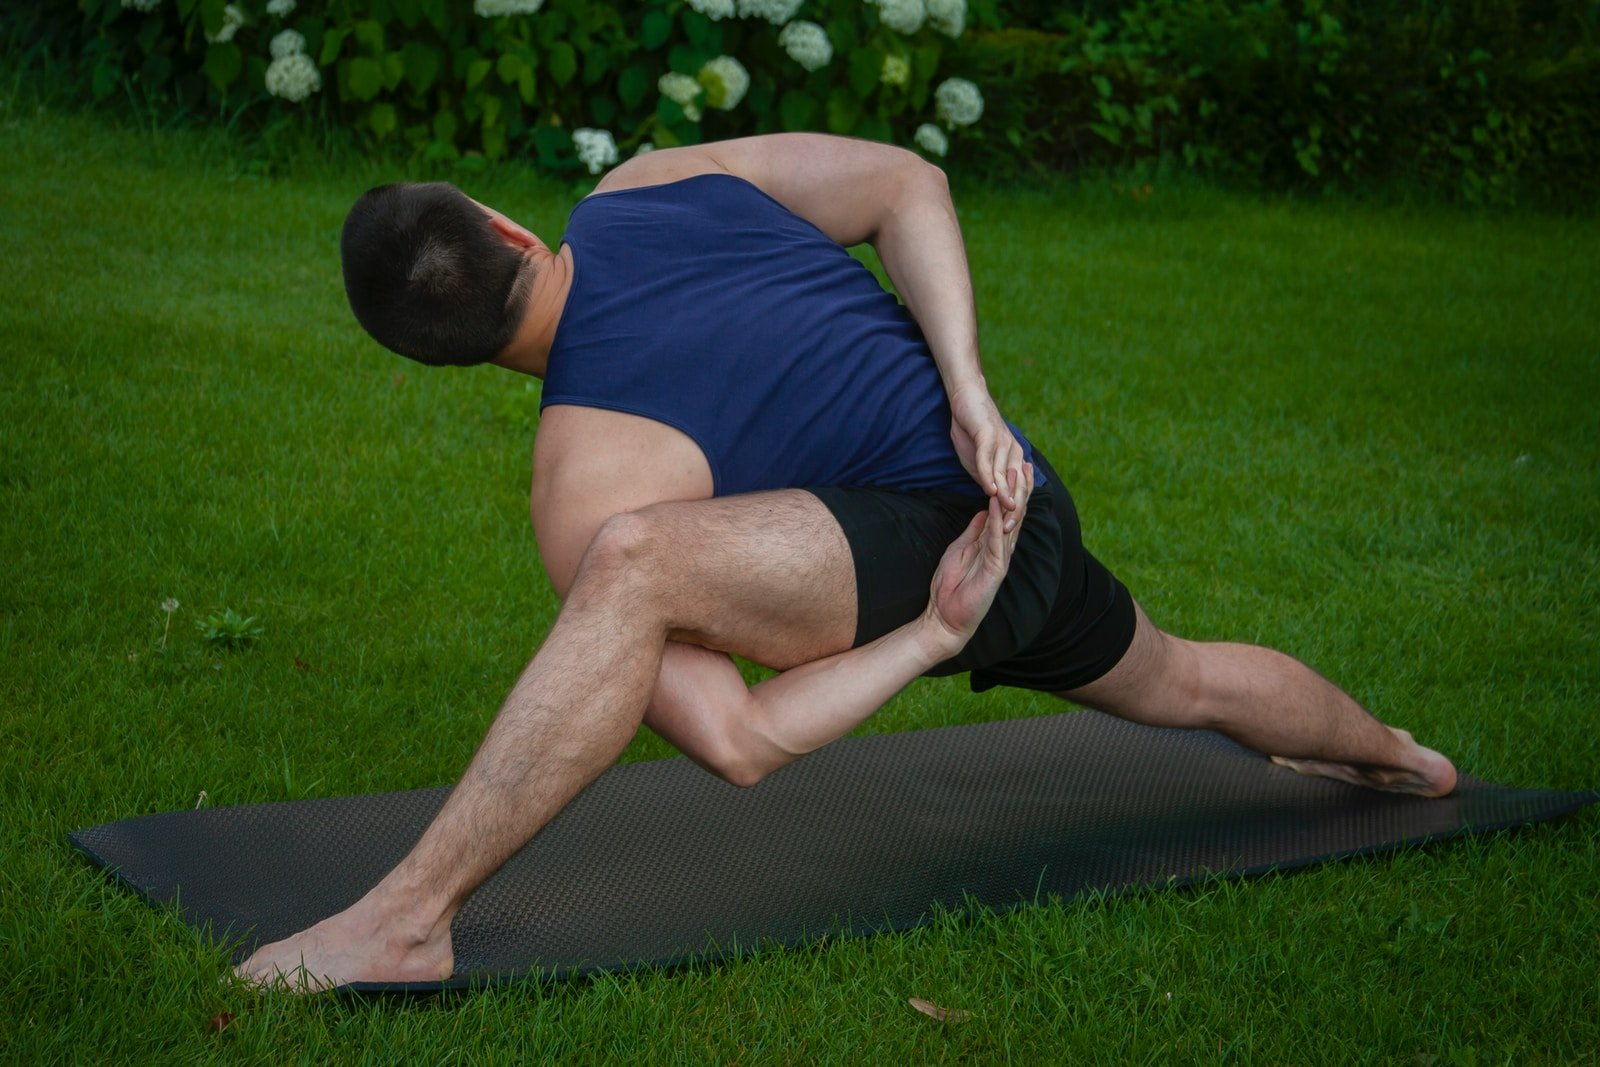 Can Yoga Help You Build Muscles?